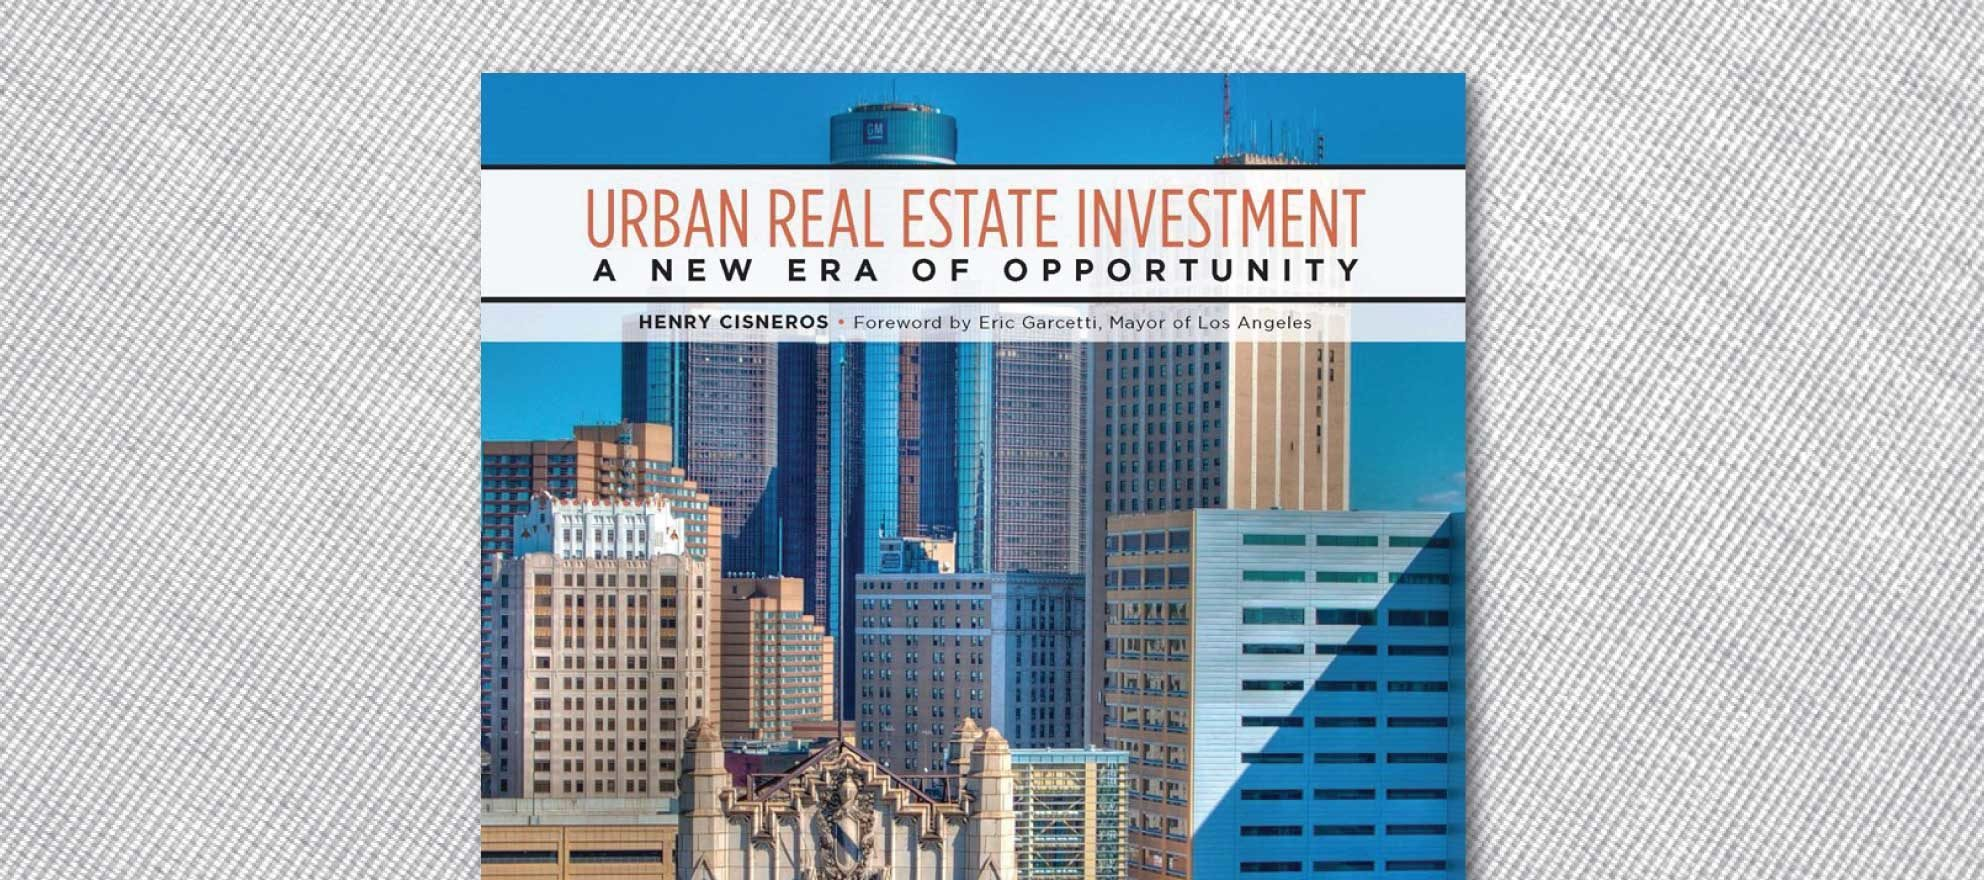 Opportunities for real estate investors seen even in markets with weak indicators